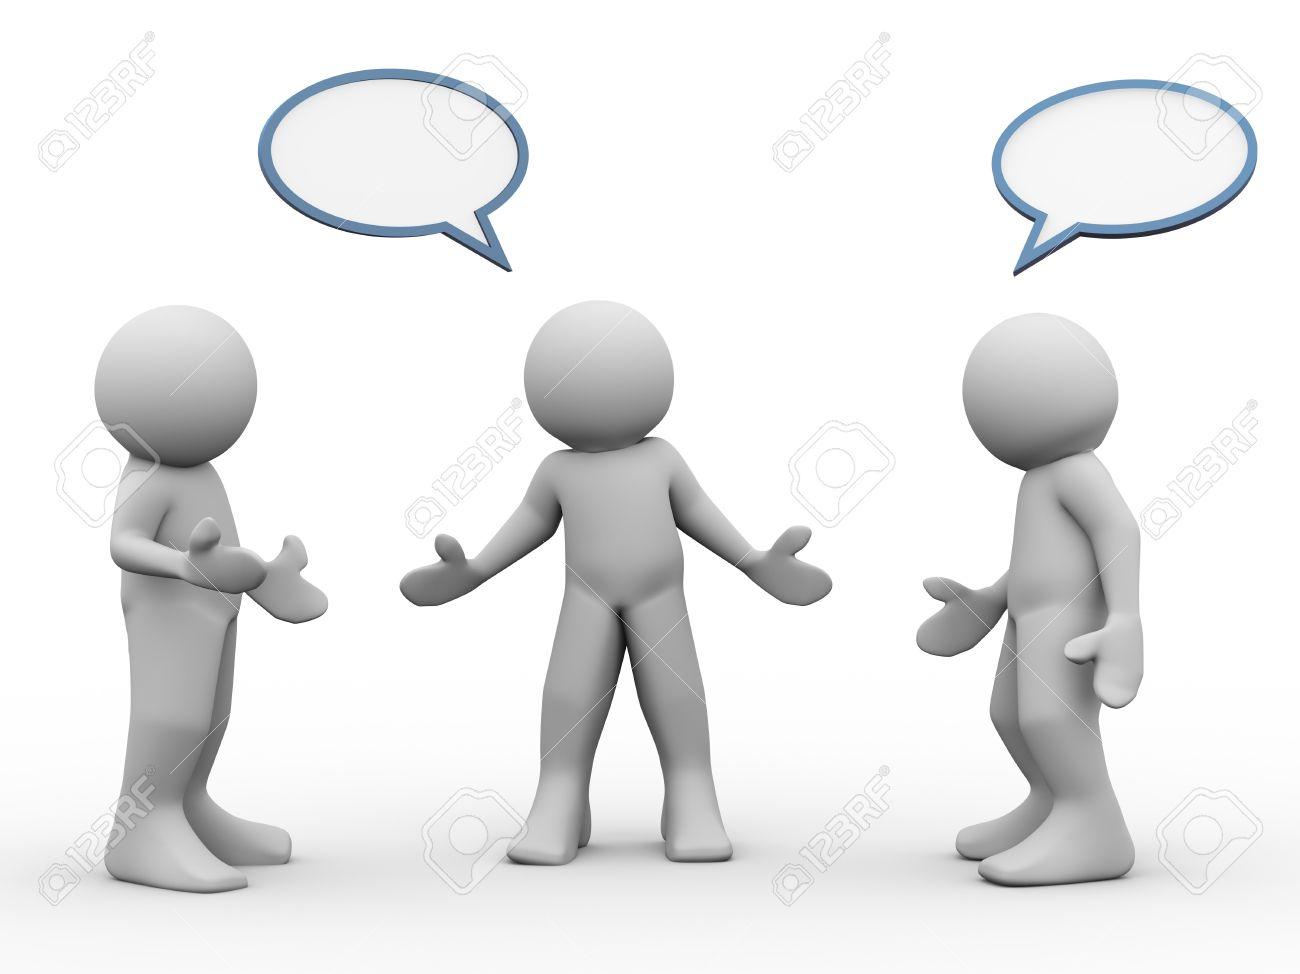 Men holding the word party concept 3d illustration stock photo - Group Discussion 3d Render Of People Taking And Discussion